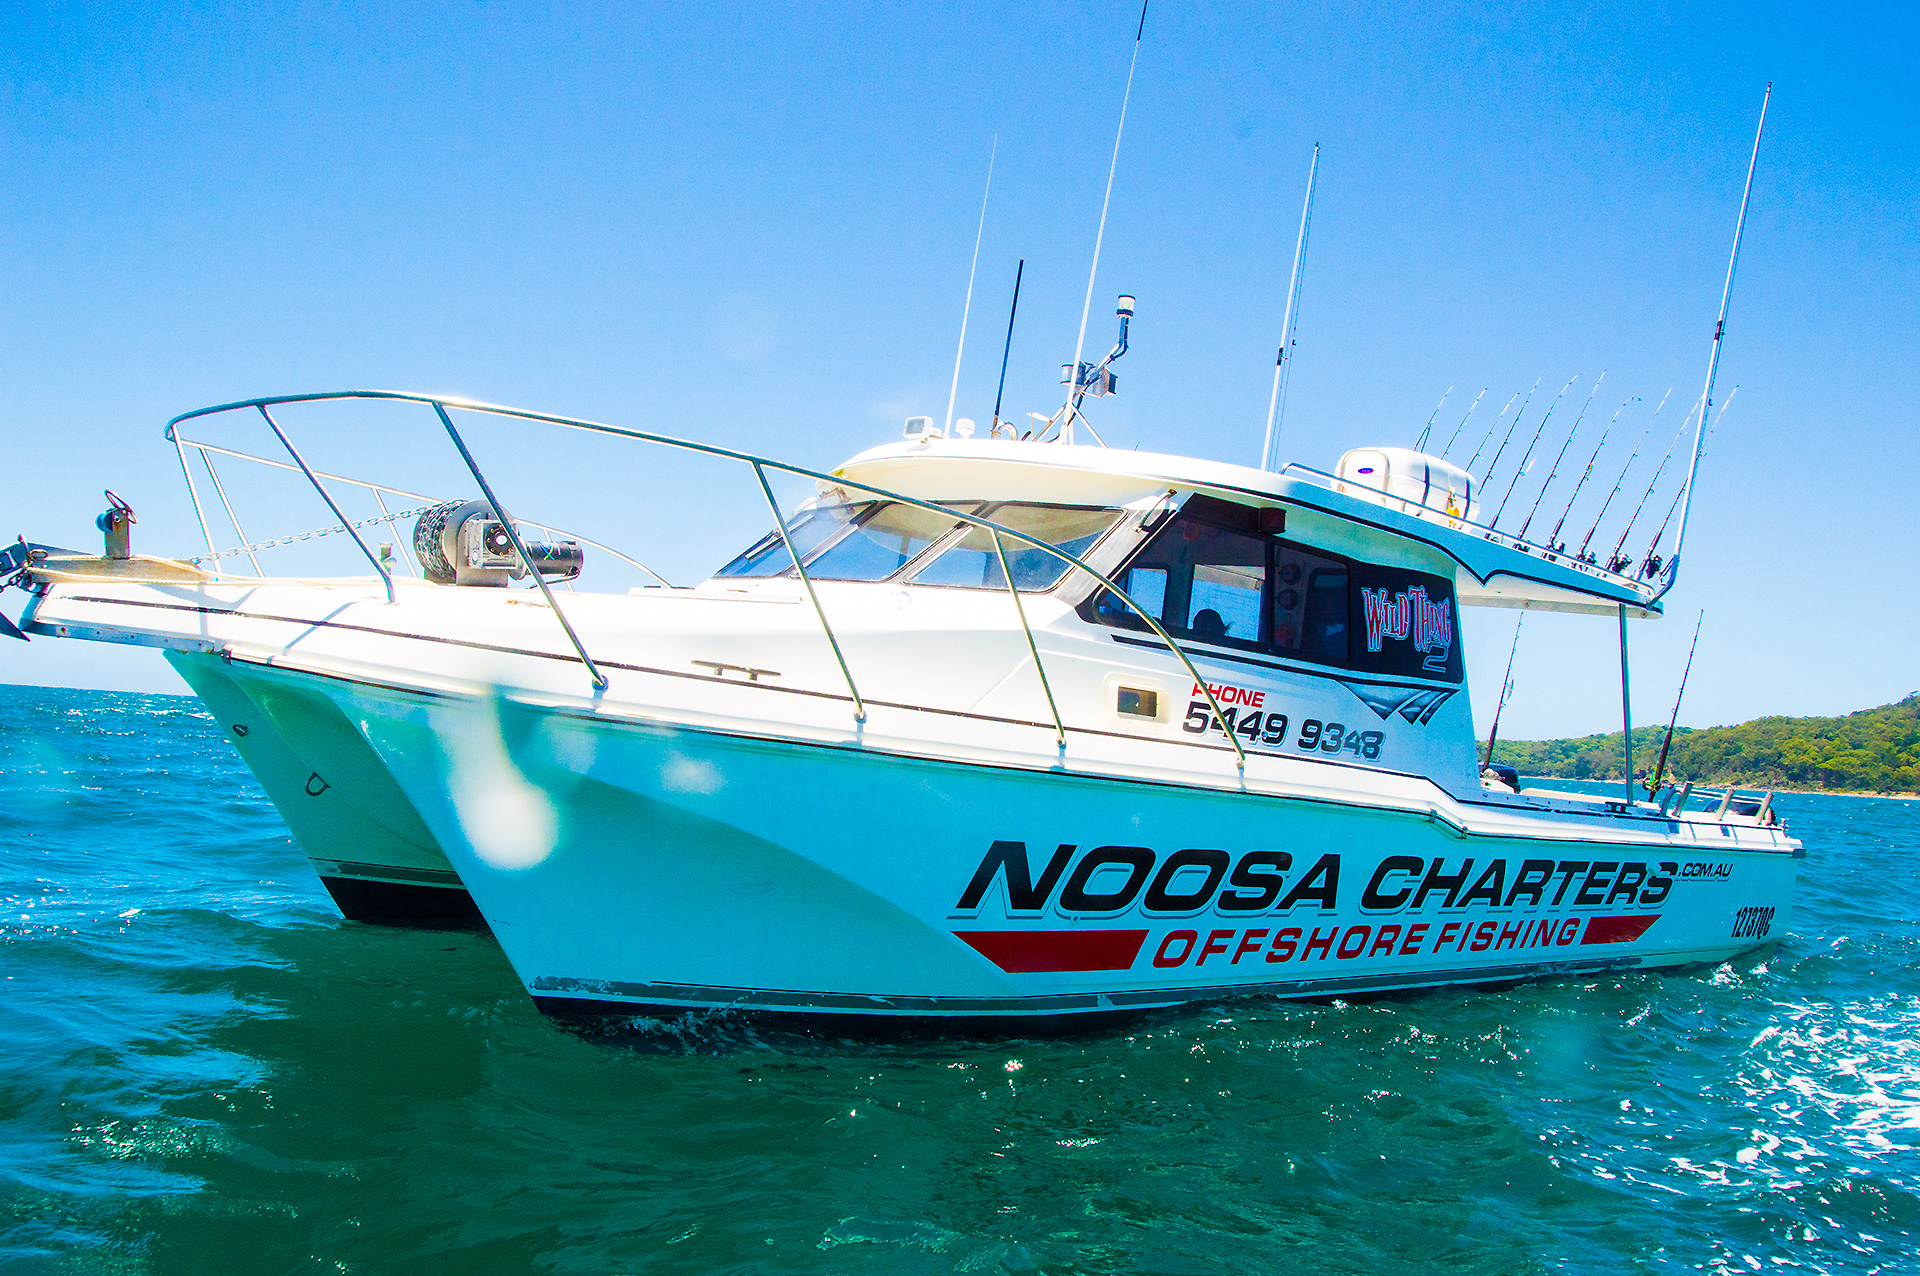 Offshore fishing charters in noosa on wild thing noosa for Off shore fishing boats